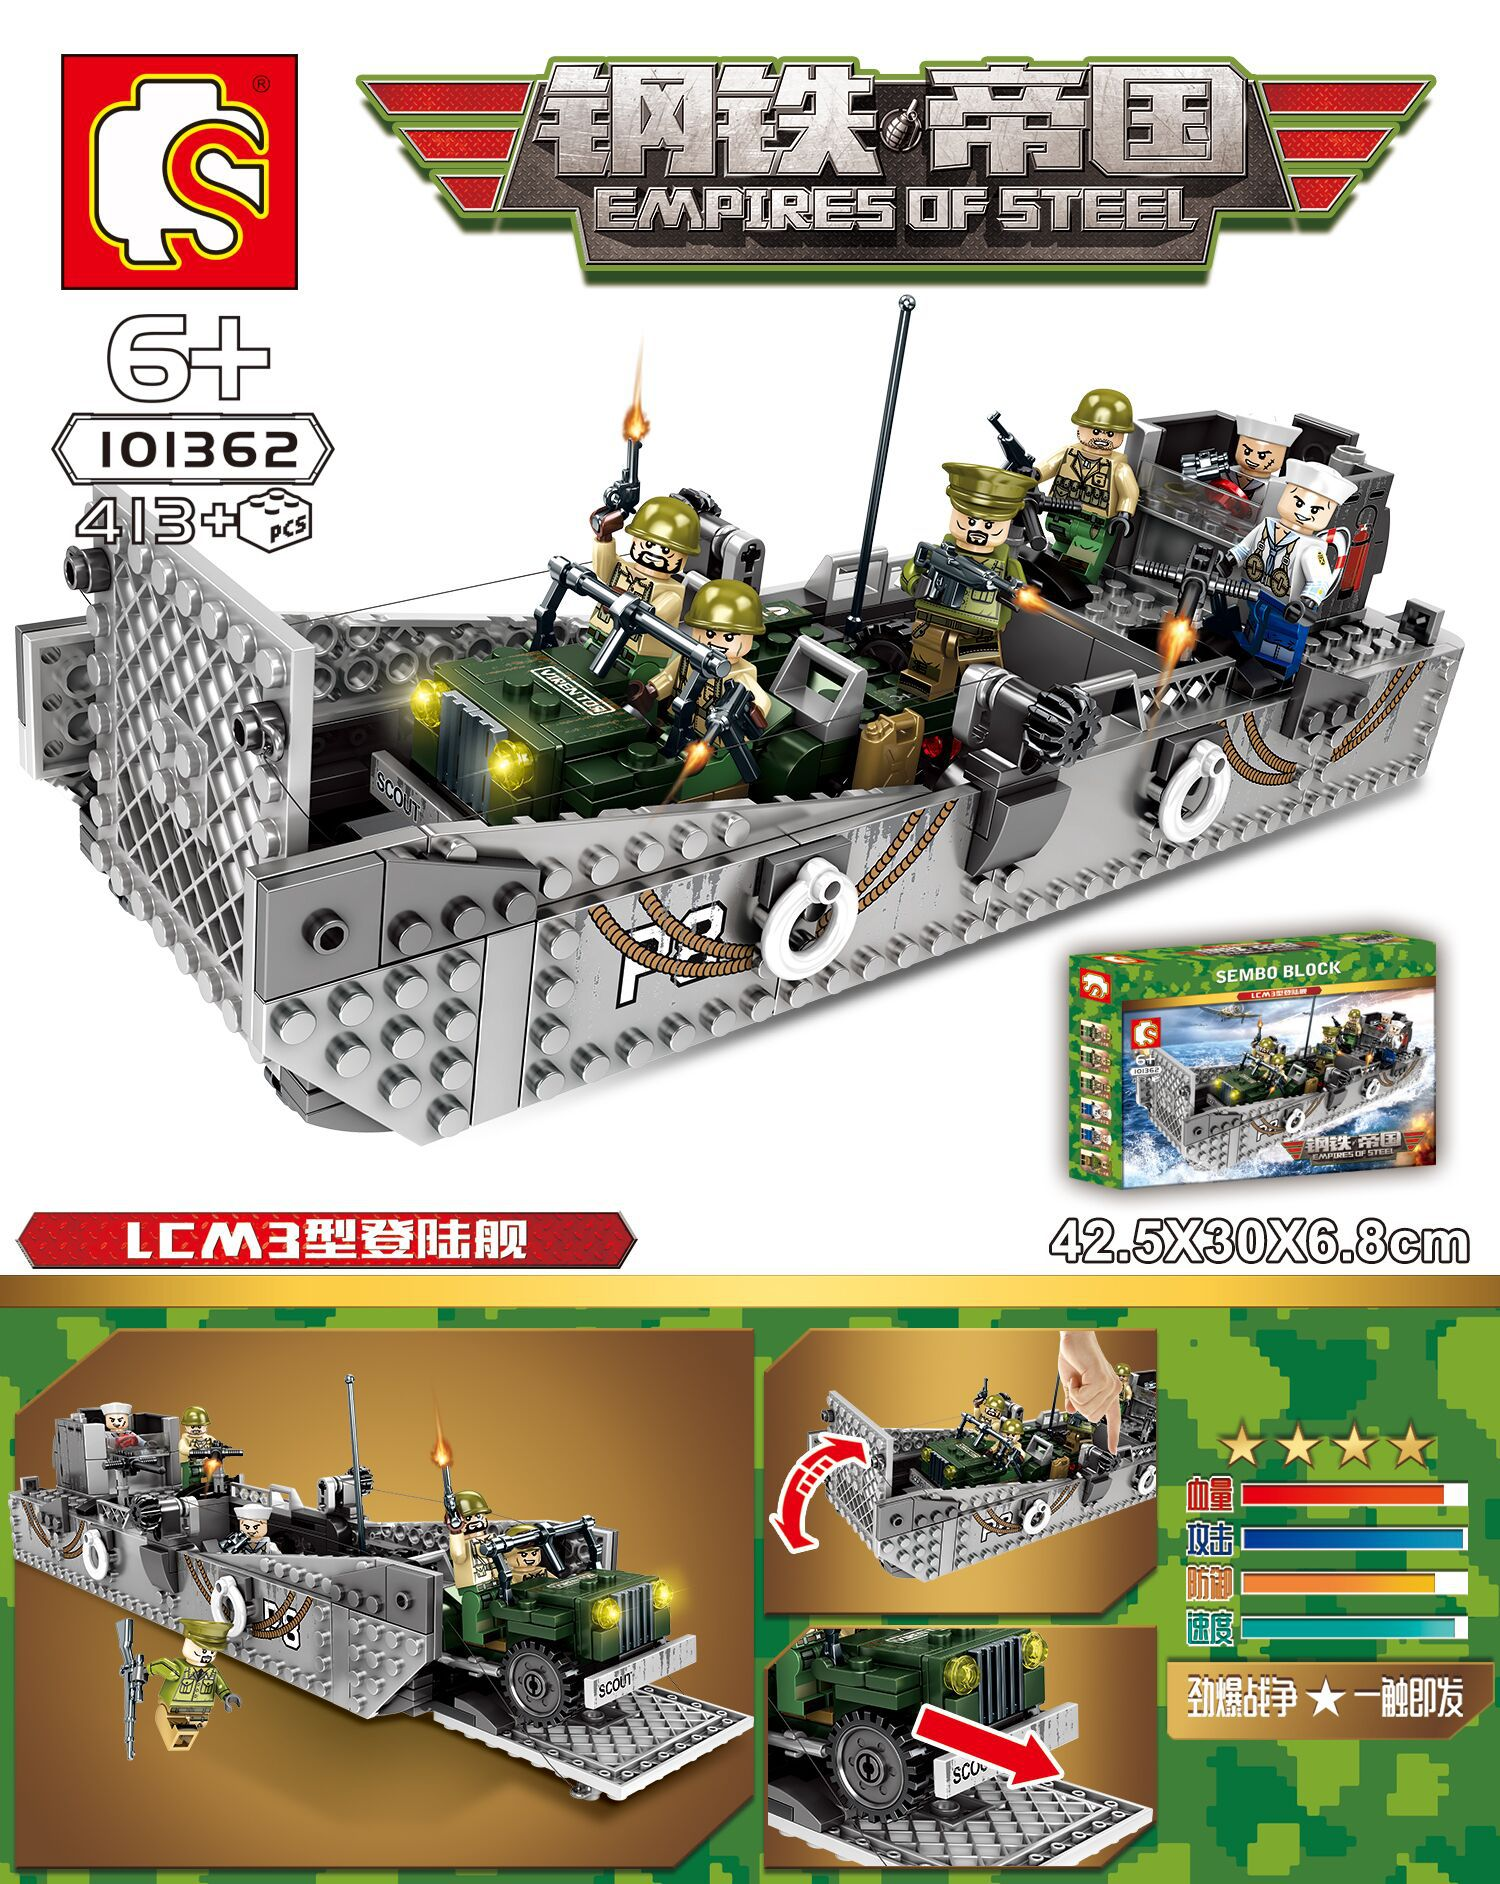 Baby Semp <font><b>101362</b></font> Iron And Steel Empire-US Military Lcm3 Type Landing Boat Building Blocks Children'S Educational Toy image